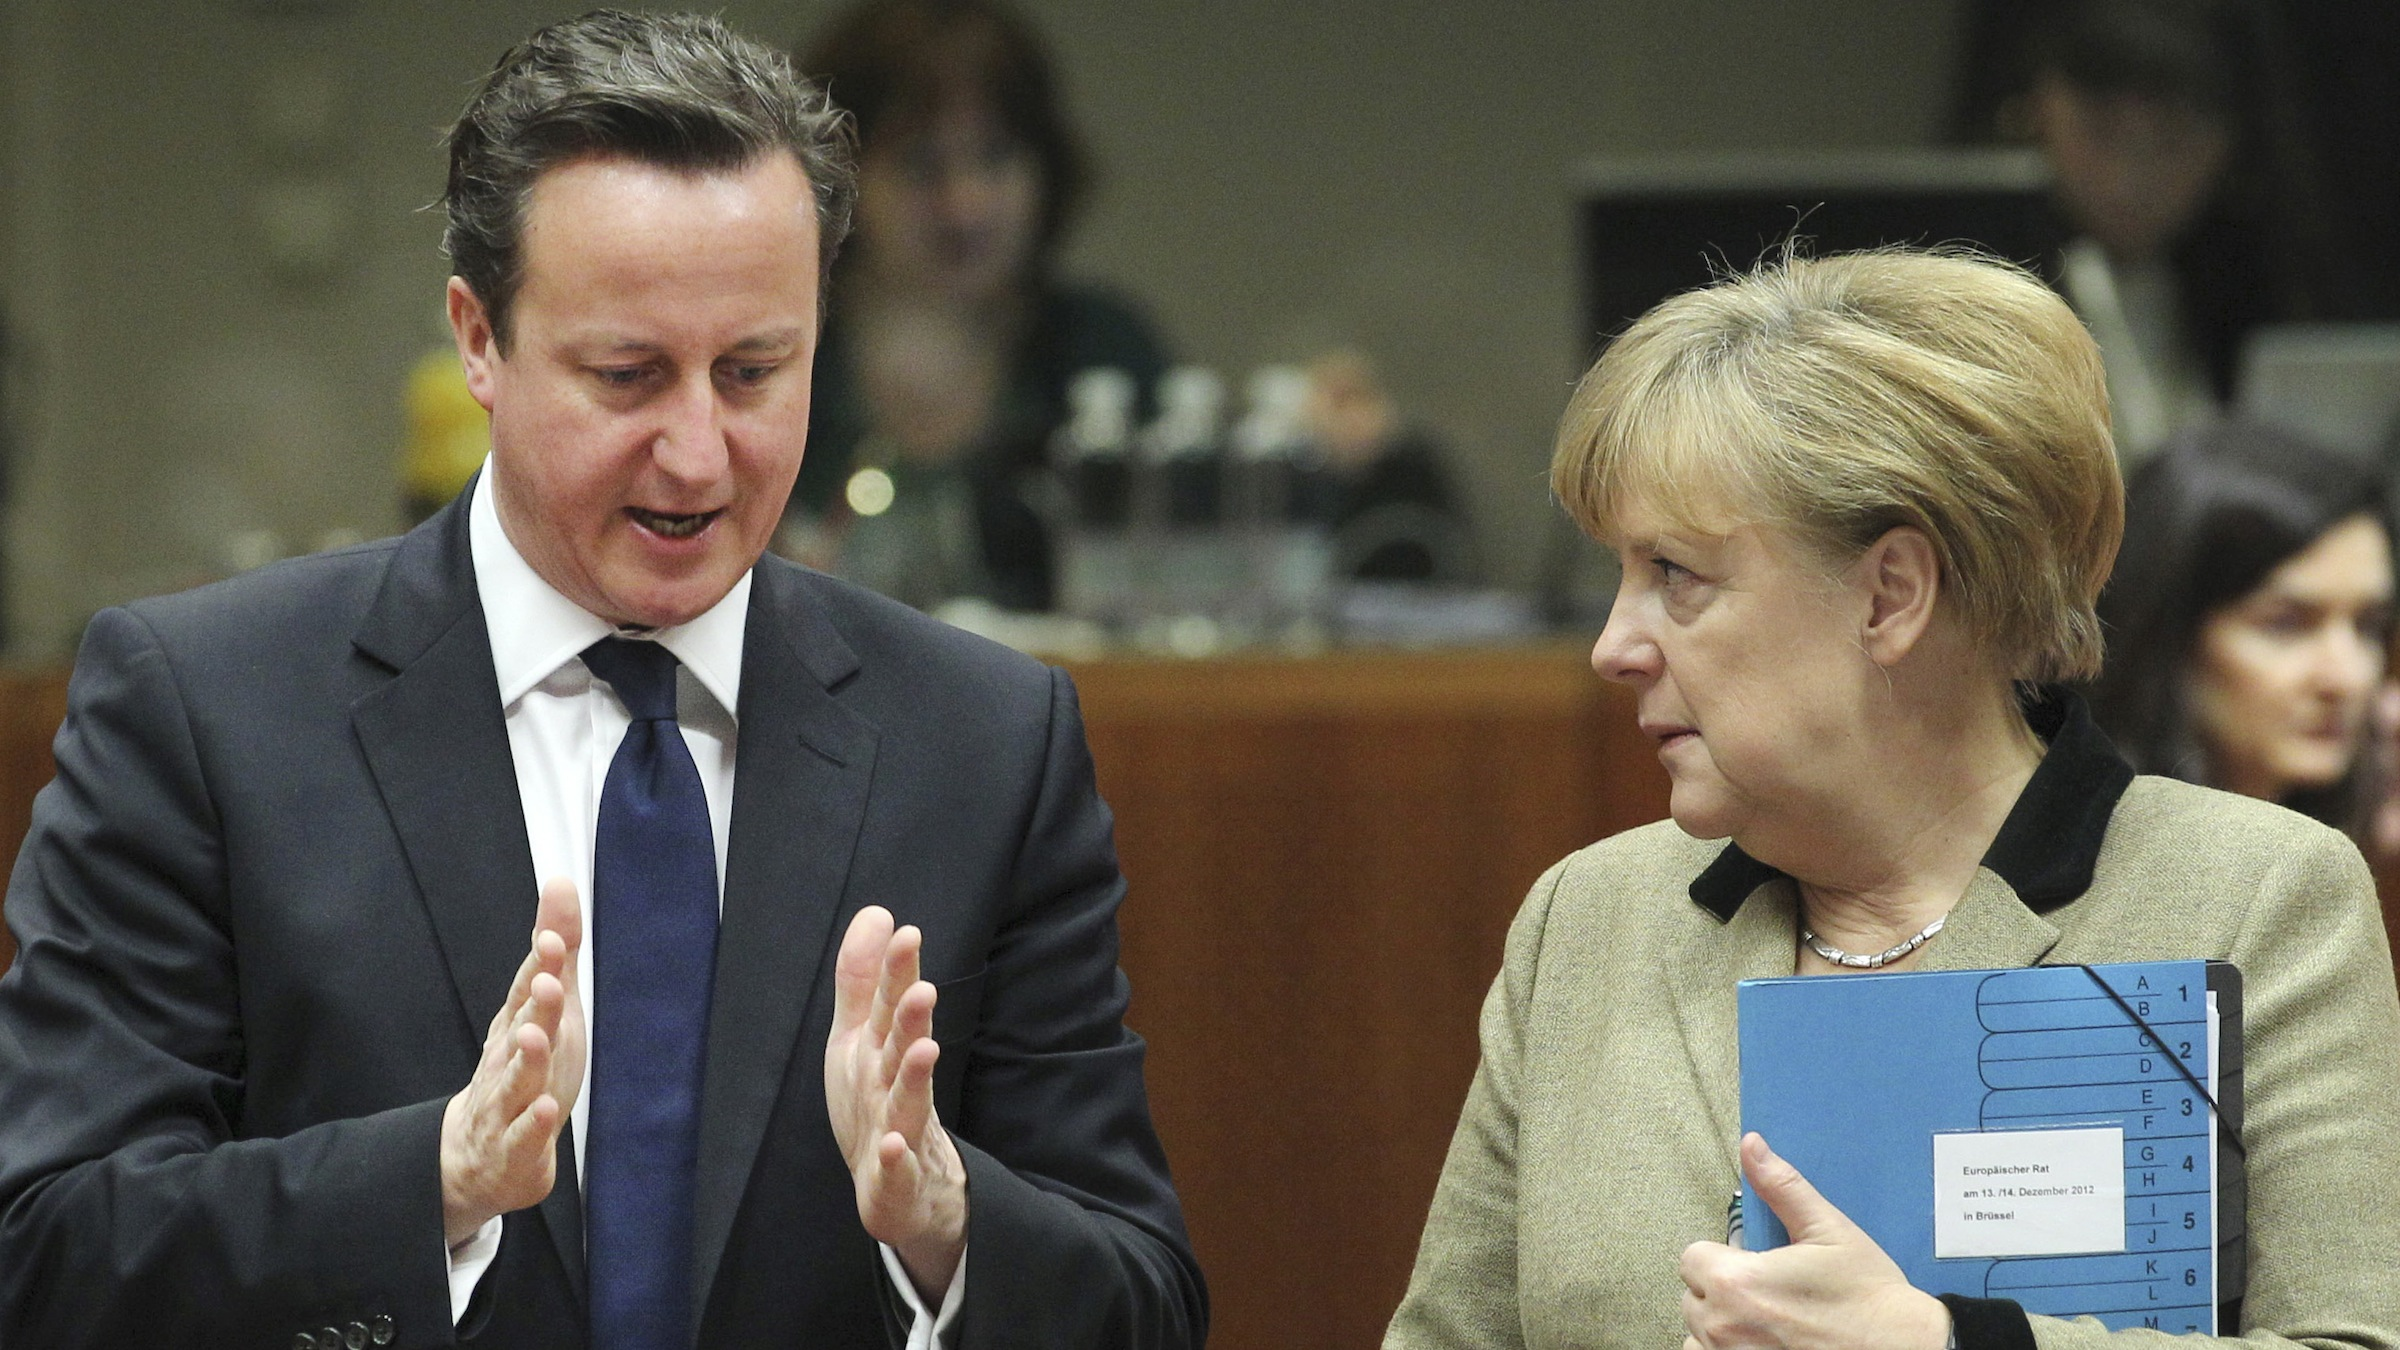 British Prime Minister David Cameron, left, speaks with German Chancellor Angela Merkel during a round table meeting an EU summit in Brussels on Friday, Dec. 14, 2012. France and Germany have had more than their share of difference over the past few months, but this week at long last the two countries were able to find a compromise that allowed the European Union to realize a deal on a banking union. (AP Photo/Yves Logghe)